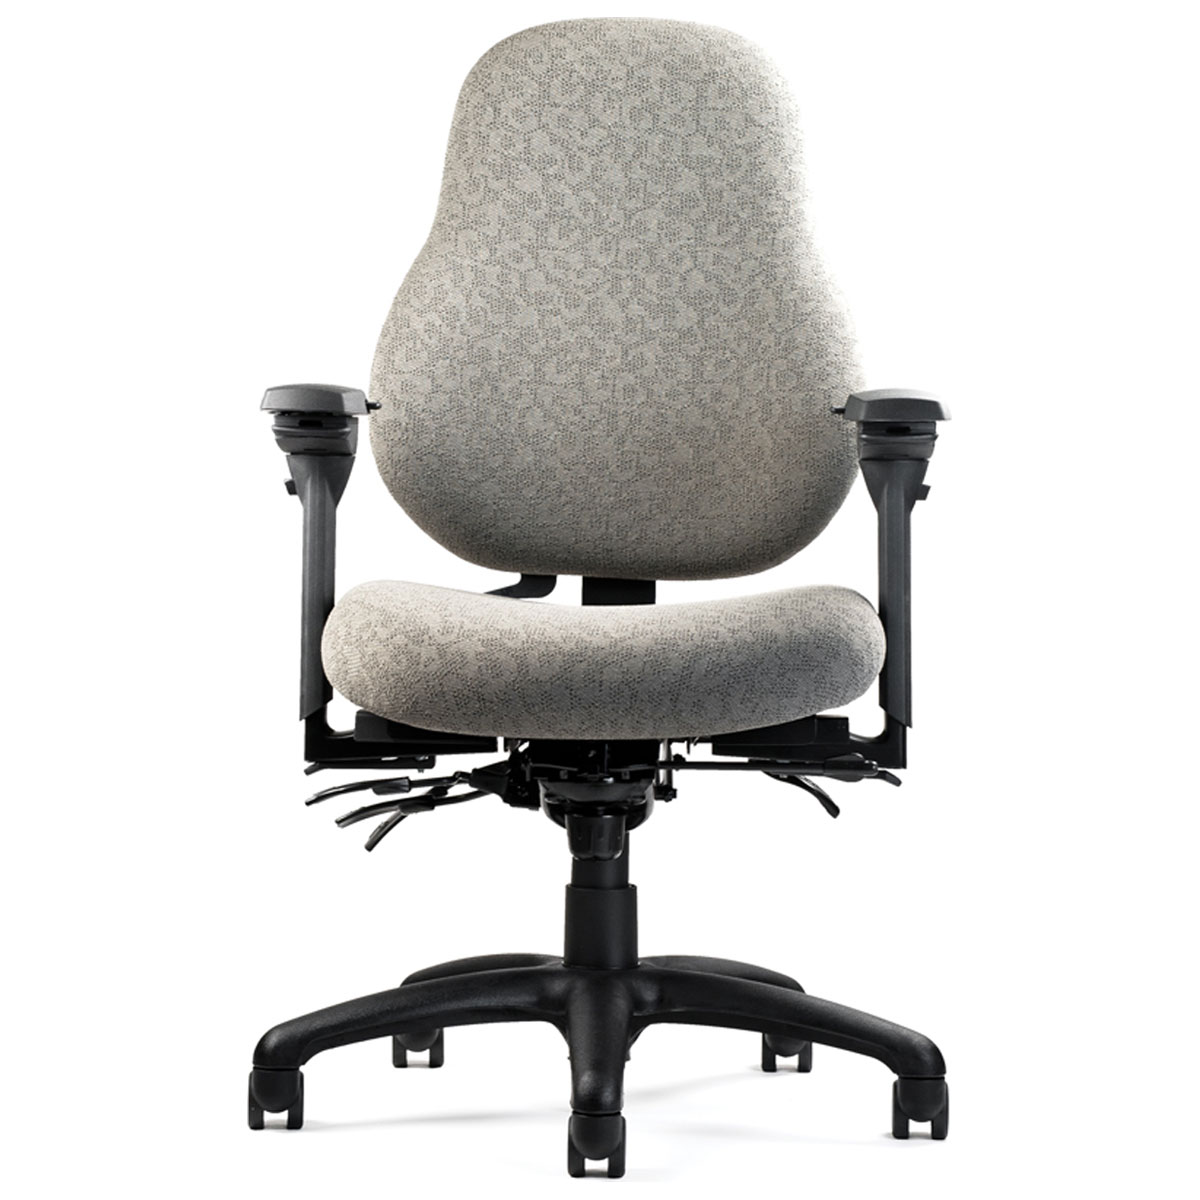 Neutral Posture Chair Neutral Posture 8000 Chair Shop Ergonomic Chairs